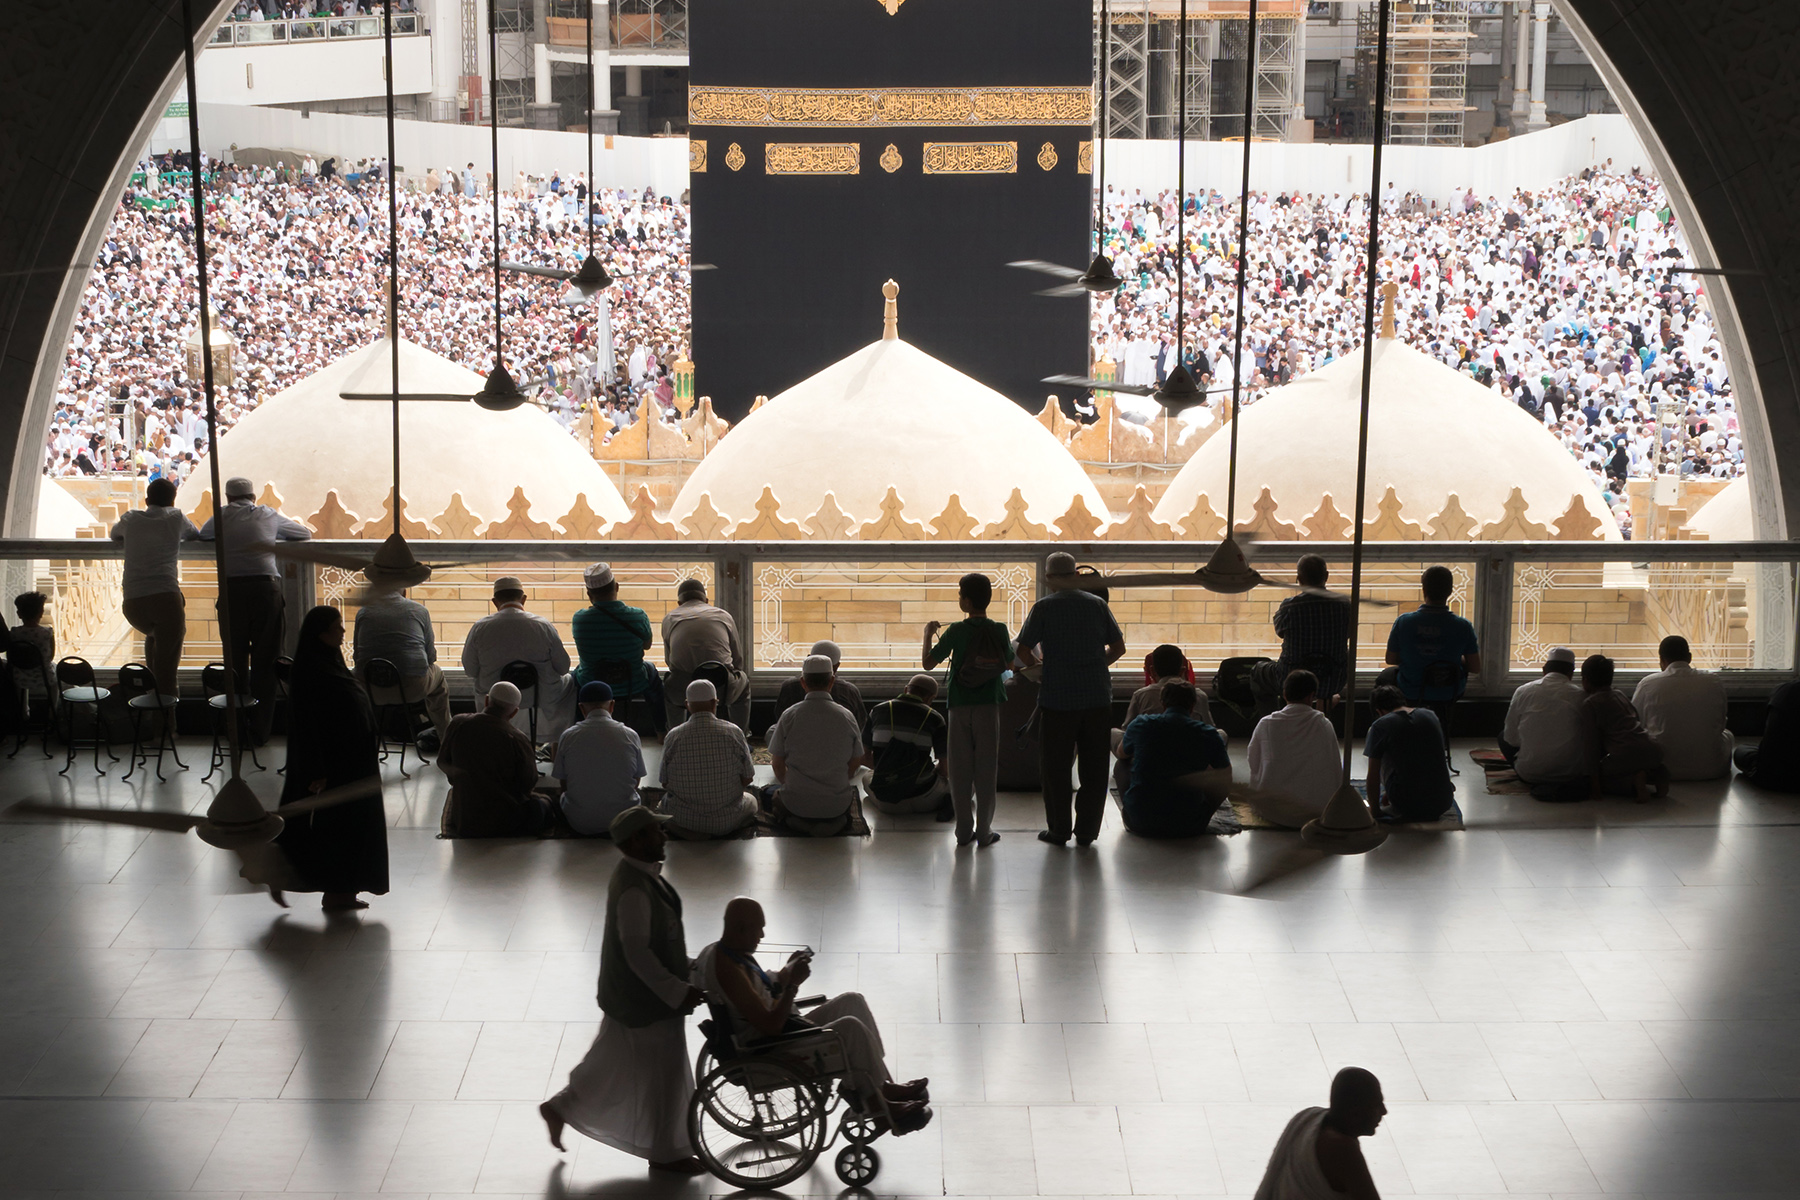 The Kaaba in Mecca is accessible to pilgrims with disabilities